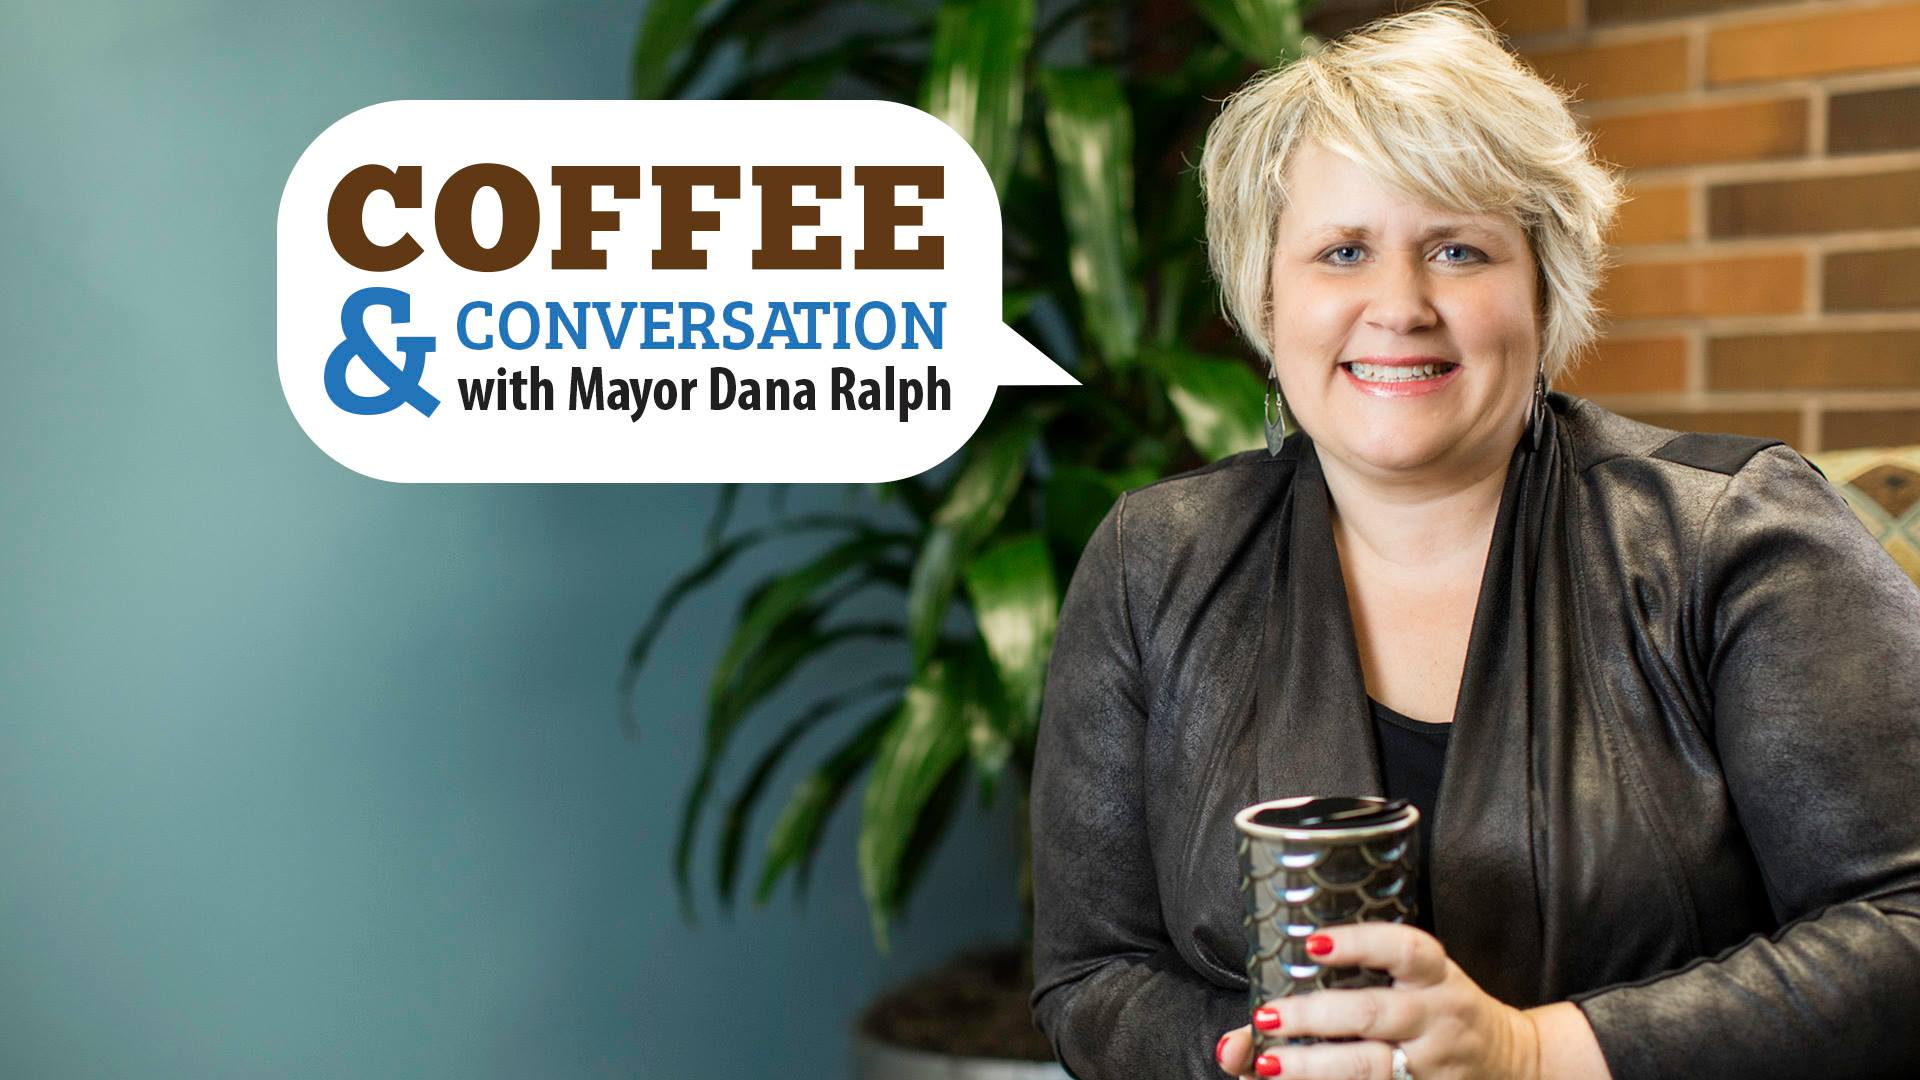 Join us October 31 for Coffee & Conversation with Mayor Dana Ralph at Sweet Themes Bakery.